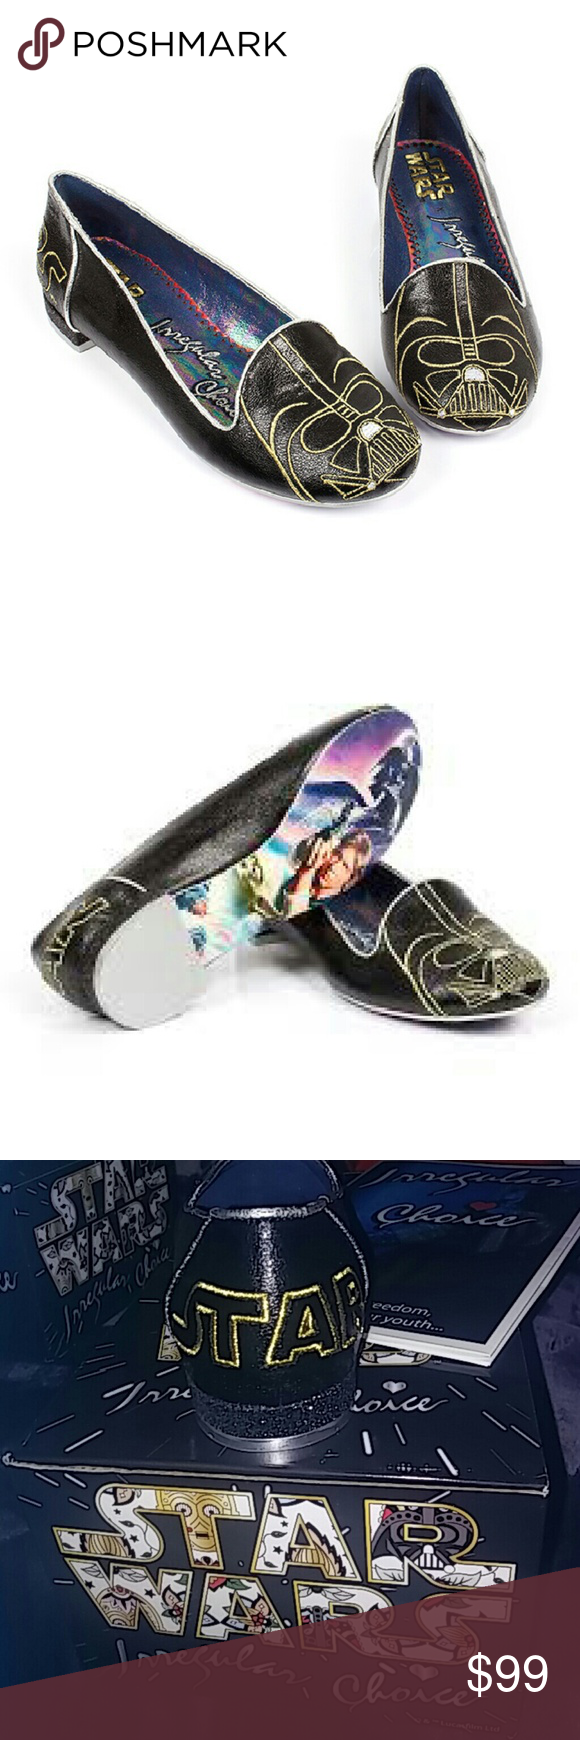 Nib Star Wars Darth Vader shoes This is a rare find new Star Wars Darth Vader shoes buy irregular choice super cute comes in its own authentic box perfect for a Christmas gift Disney Shoes